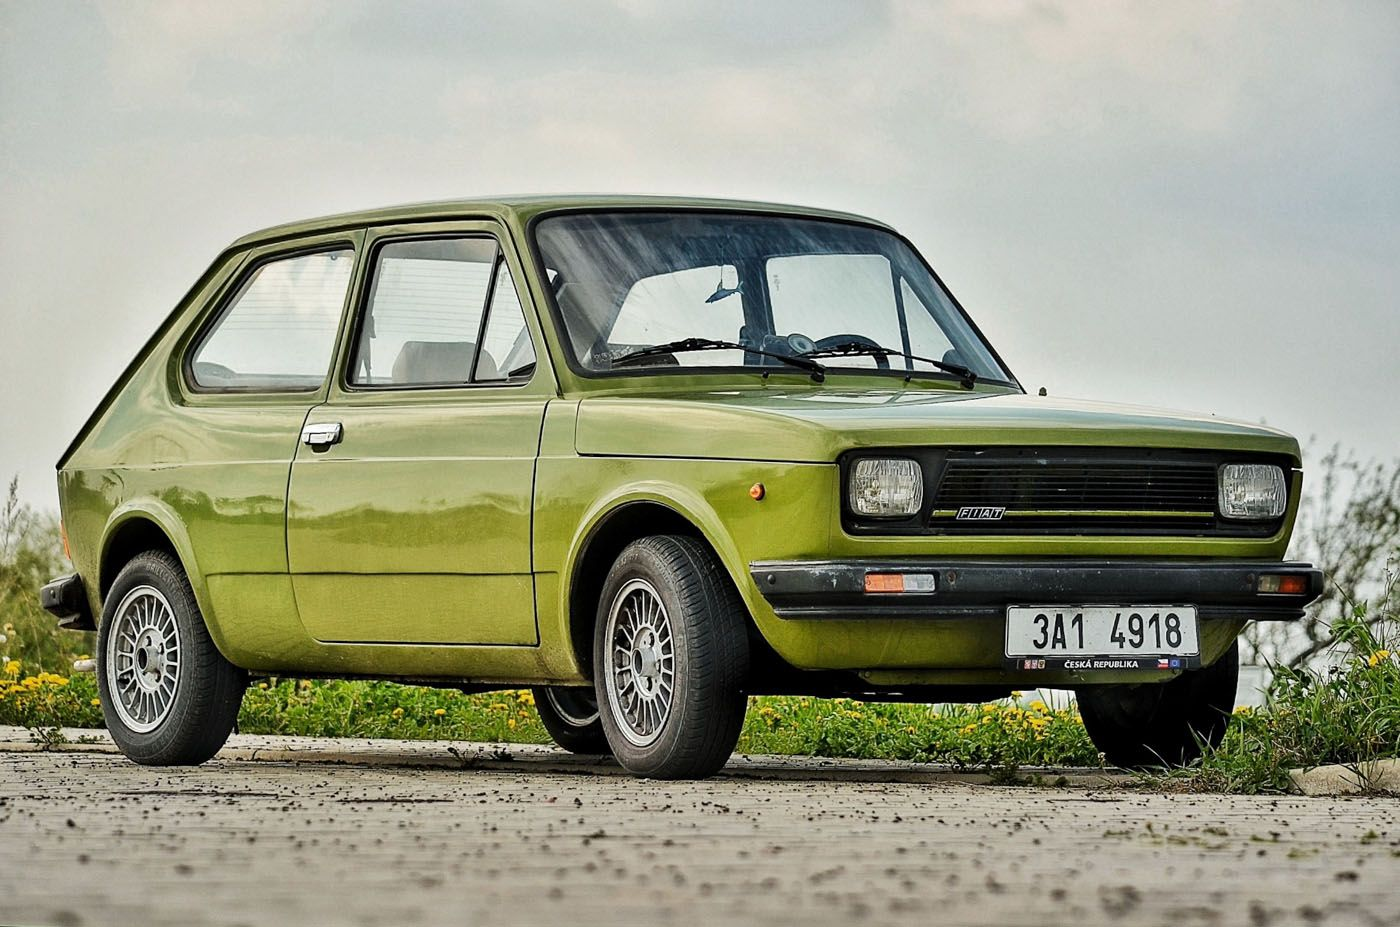 Fiat fiat 127 : Perseverance and Passion Keep This Fiat Humming | Fiat, Cars and ...